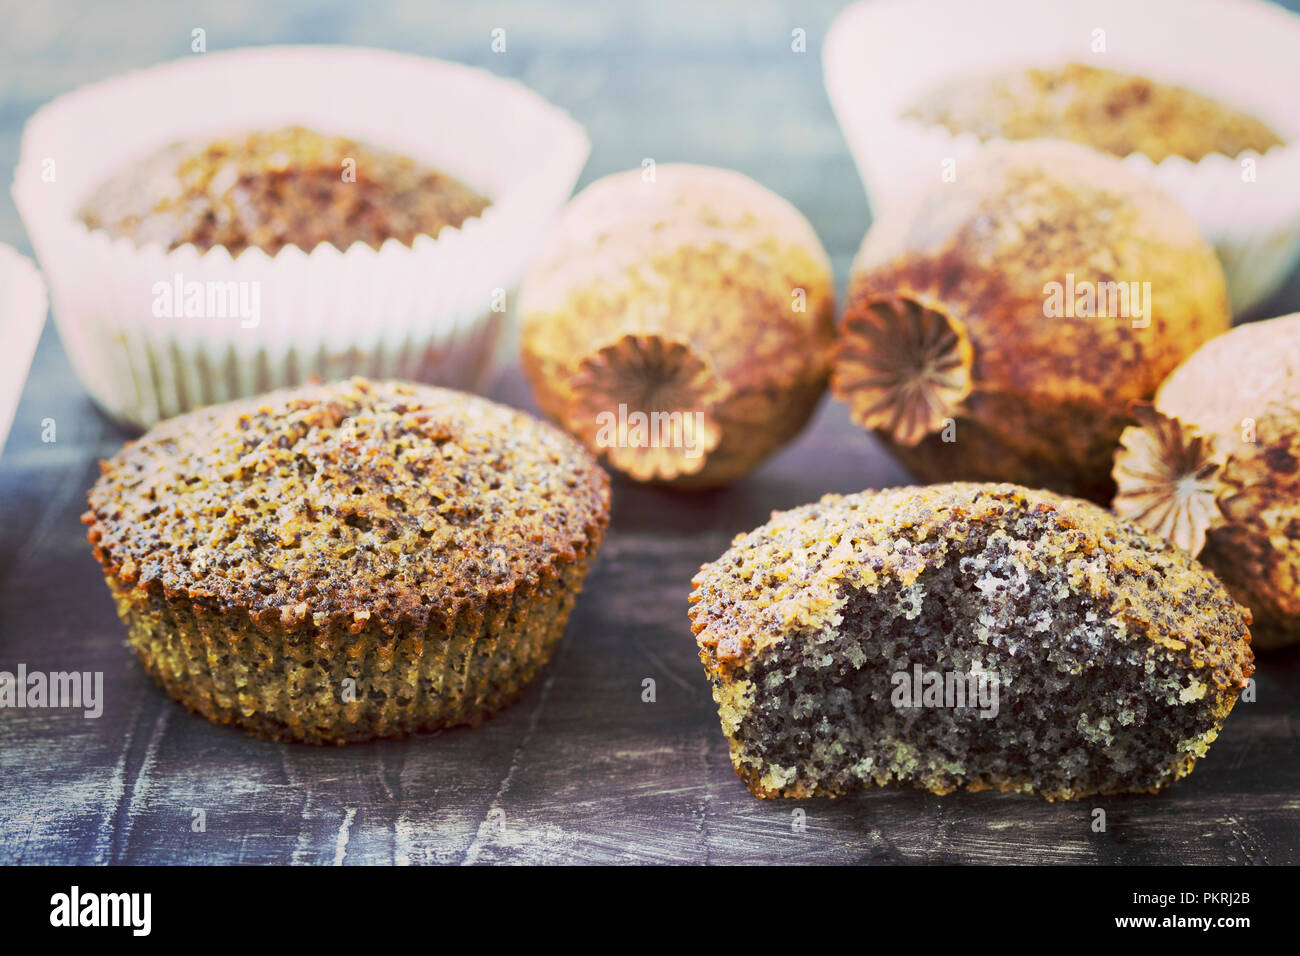 Muffins with poppy seeds on a table - Stock Image